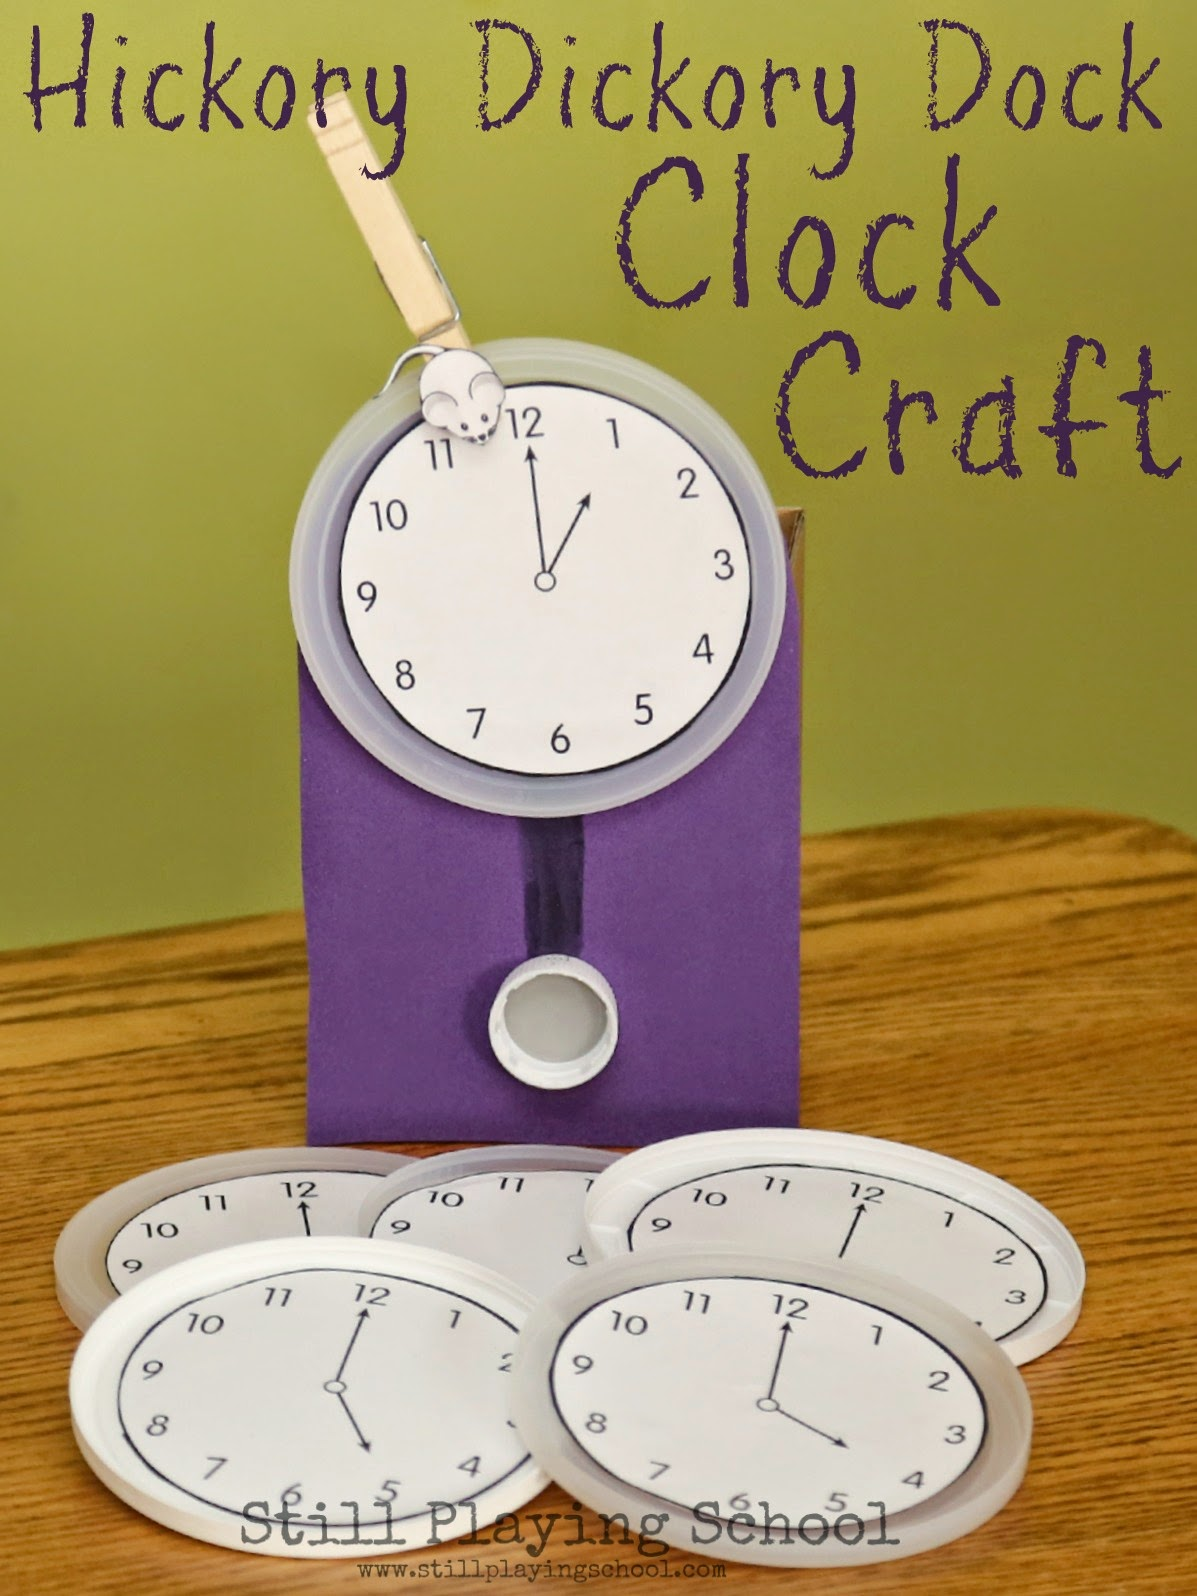 Hickory Dickory Dock Clock Craft Amp Time Telling Activity